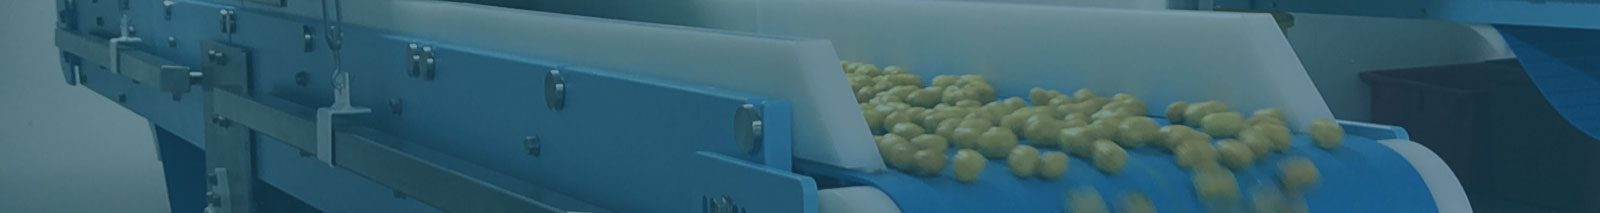 DynaClean Food Conveyors